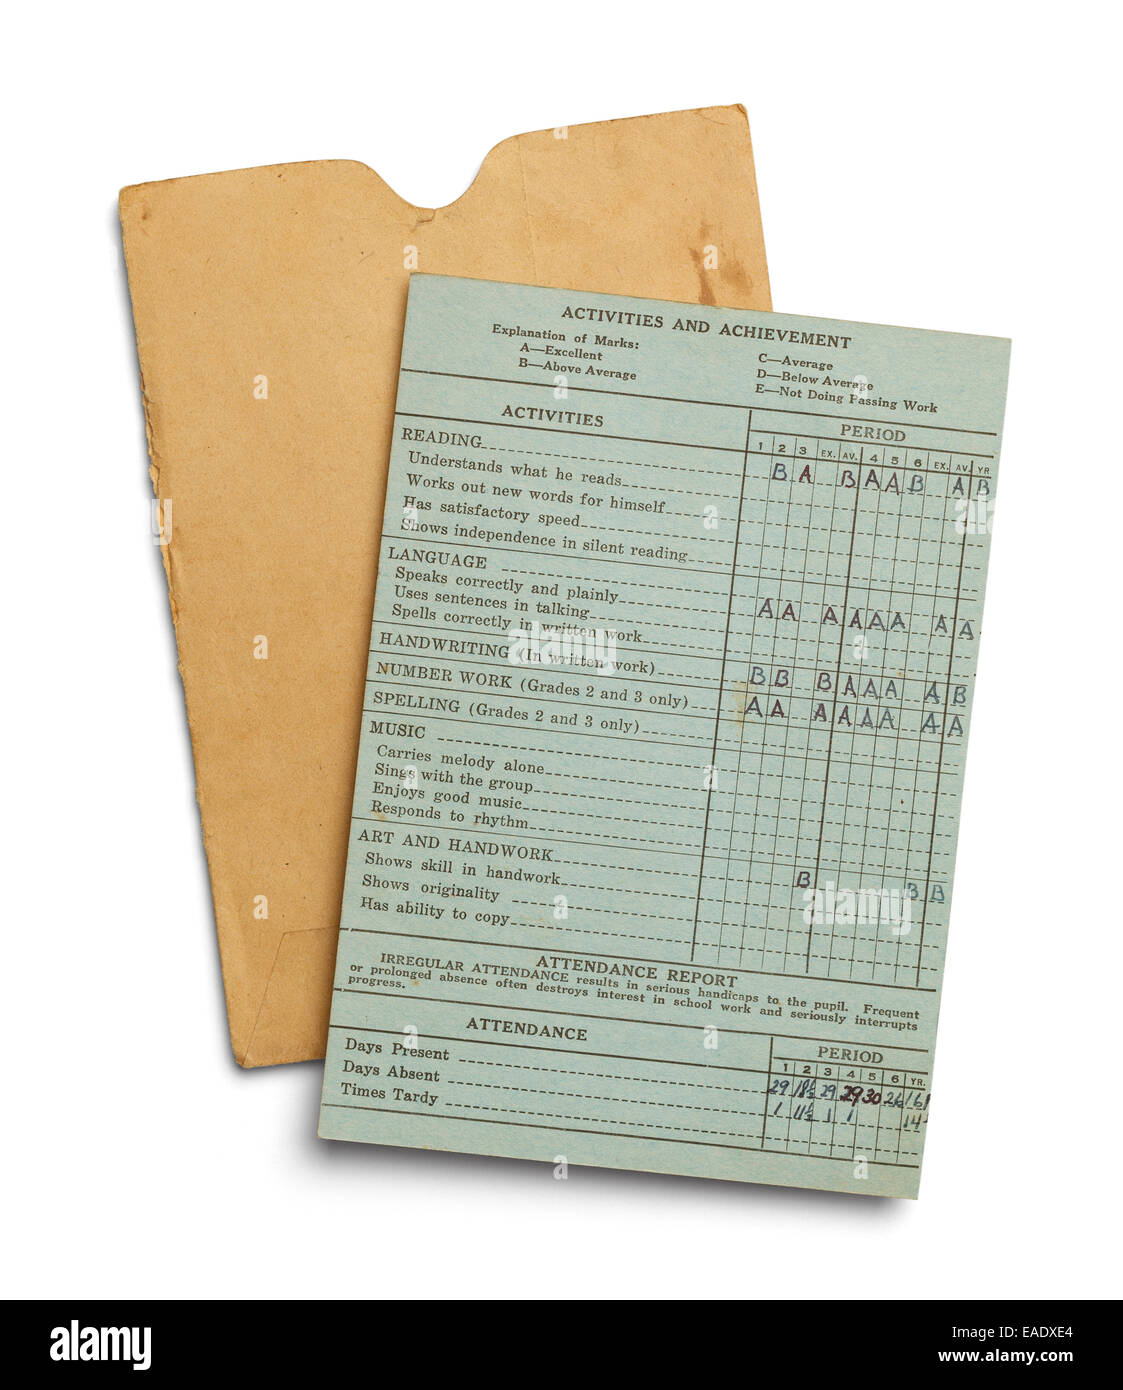 Green Aged Report Card With Yellow Envelope Isolated on White Background. - Stock Image